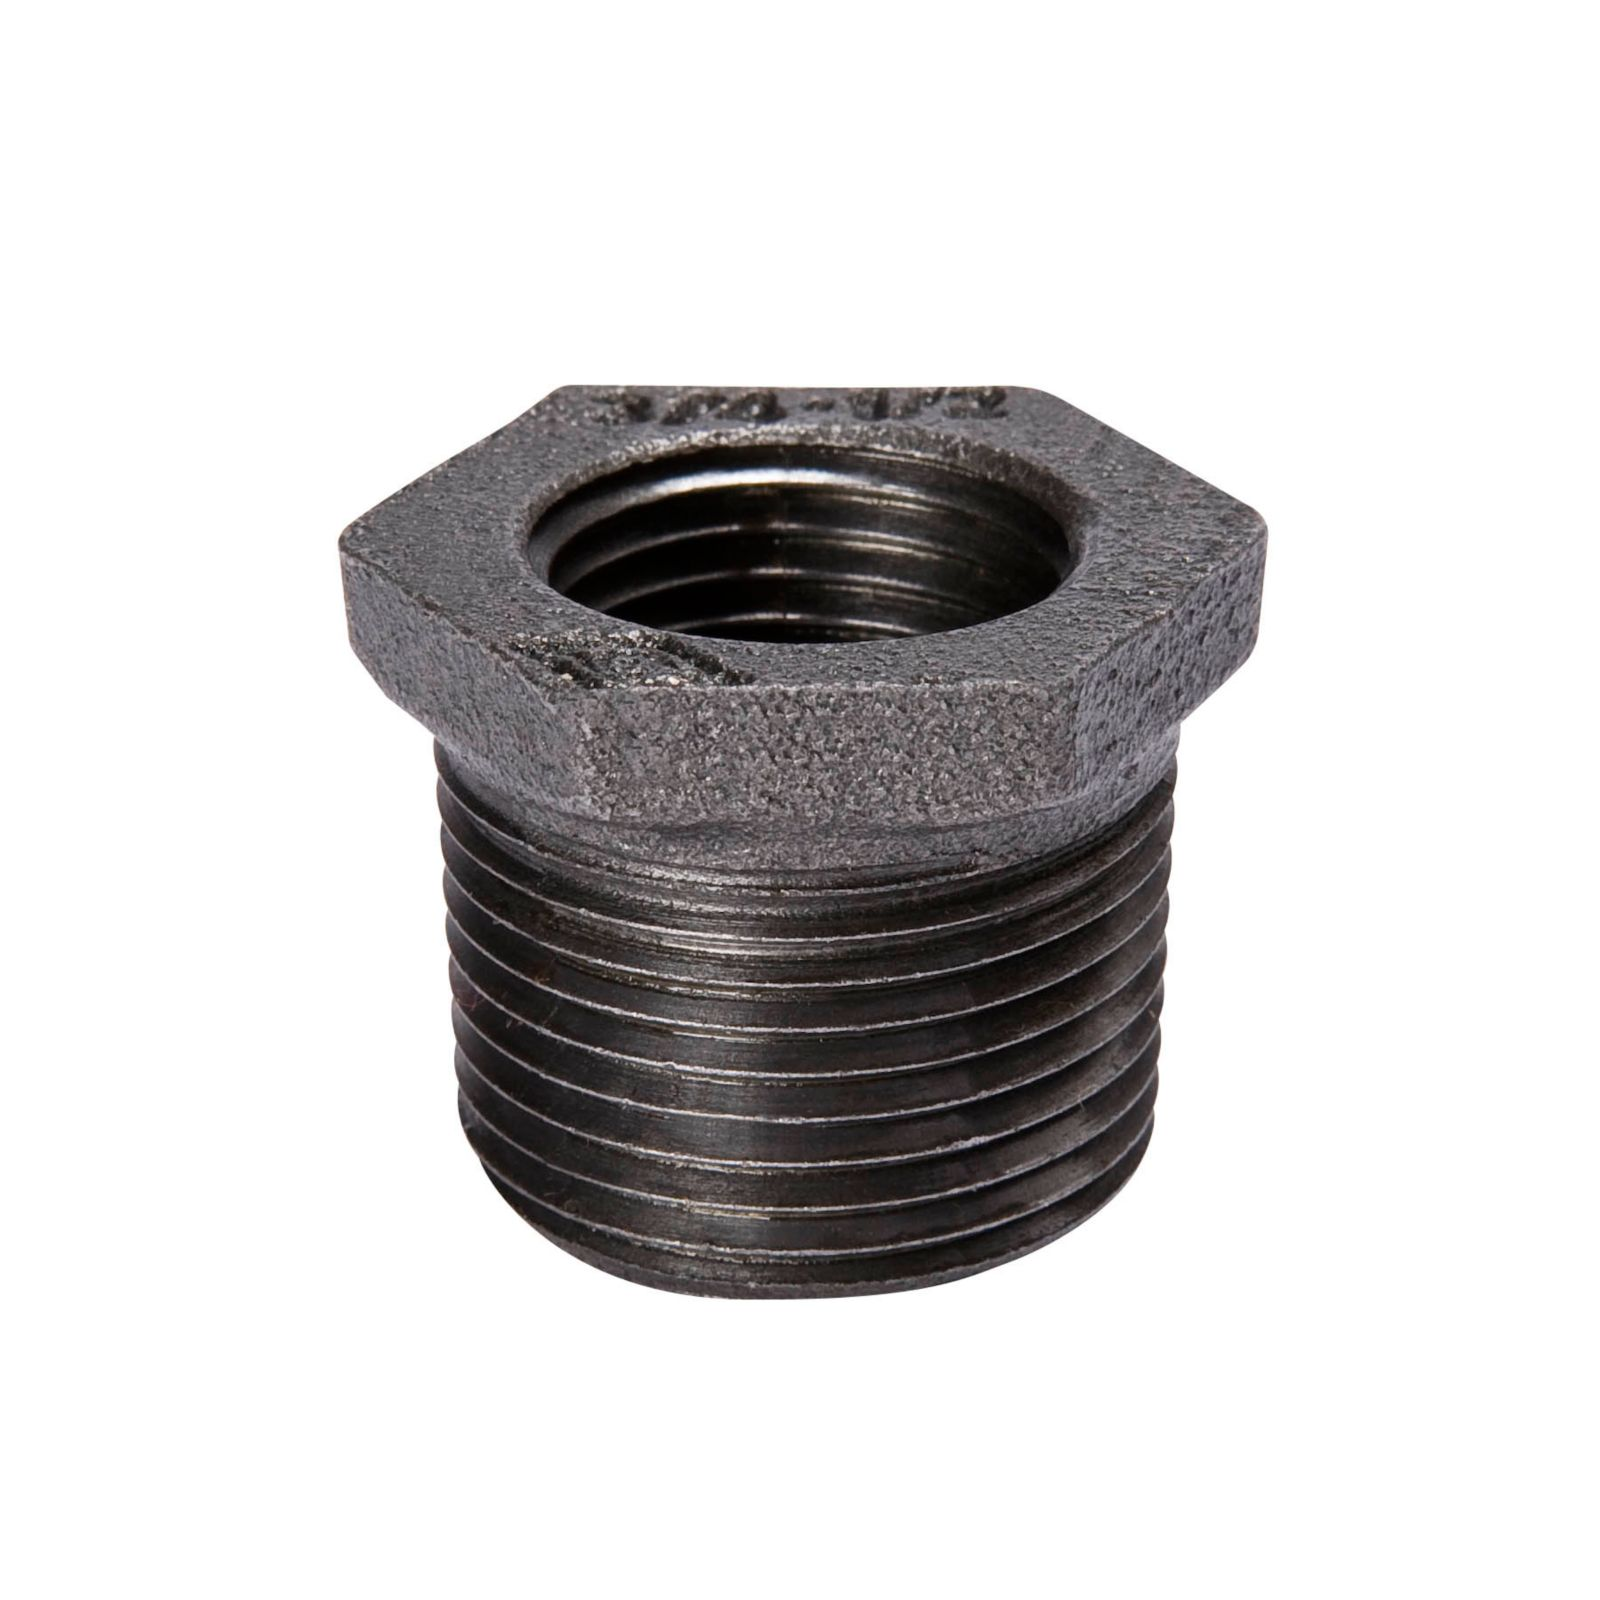 "Southland 521-943 - Black Hex Bushing, 3/4"" X 1/2"" I.D."